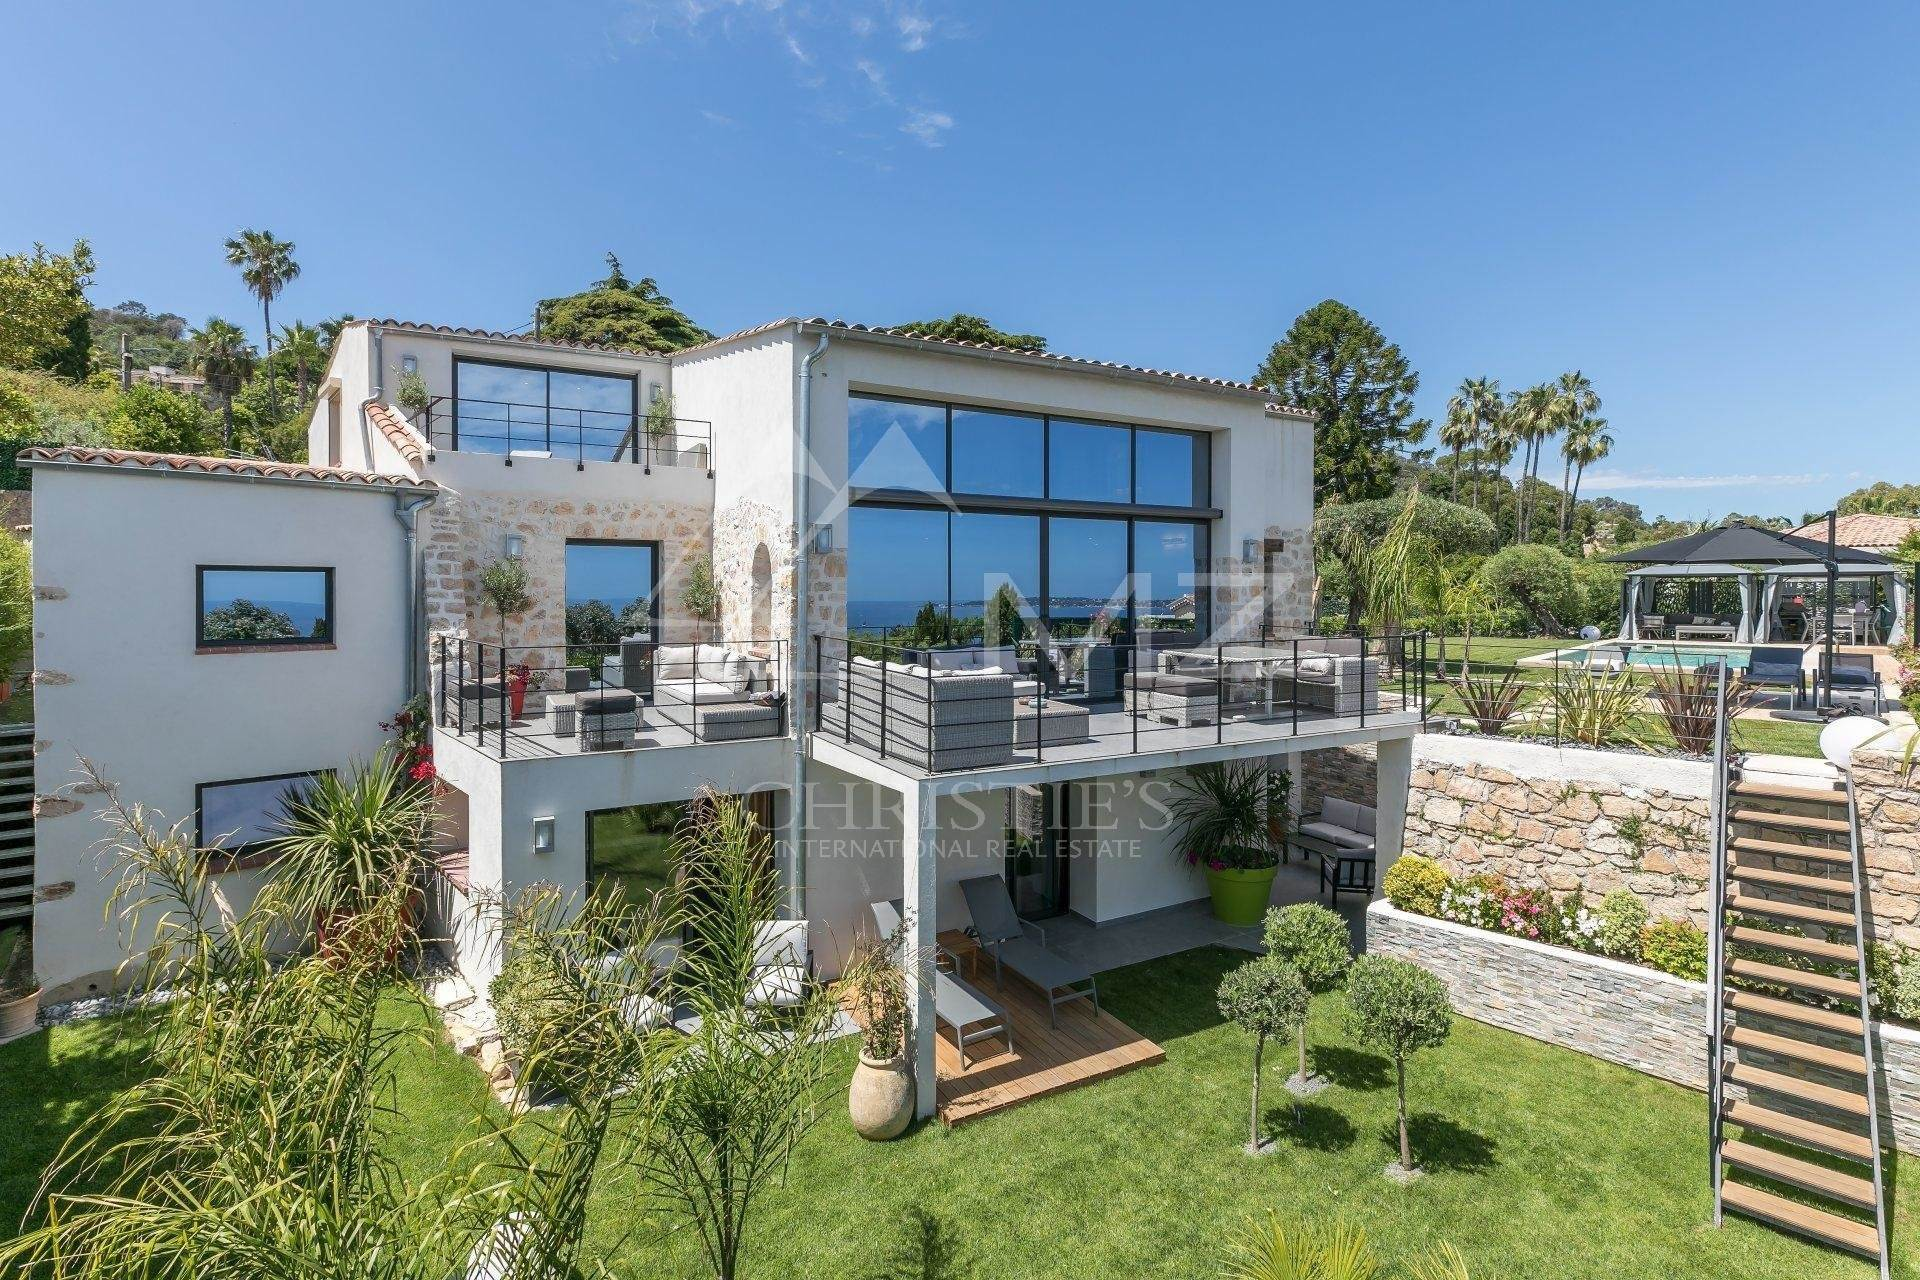 Villa/Townhouse for Sale at Cannes Eden - 180° panoramic sea views Vallauris, Alpes-Maritimes,06220 France